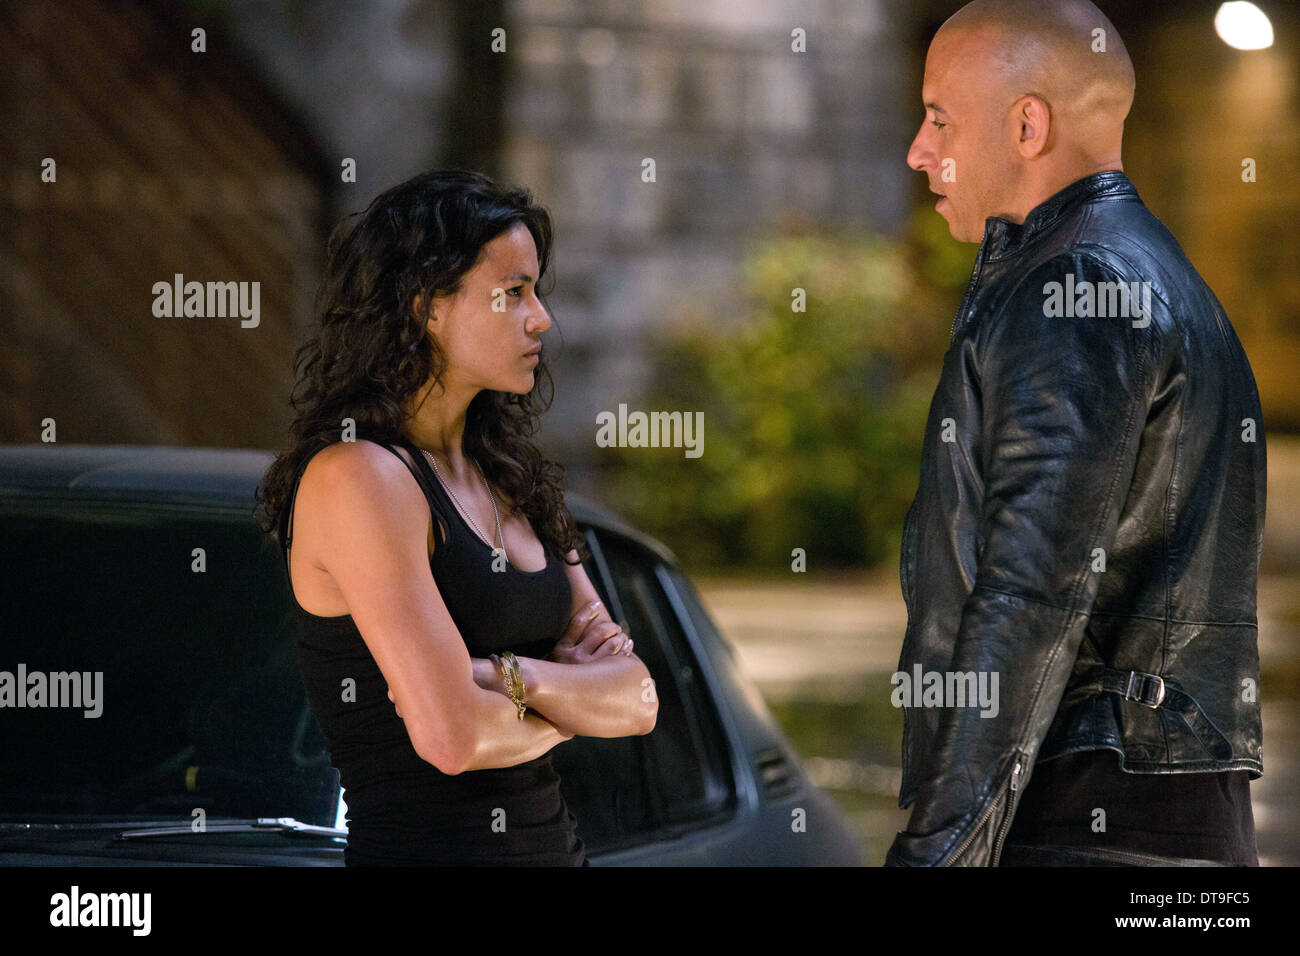 MICHELLE RODRIGUEZ & VIN DIESEL THE FAST AND THE FURIOUS 6 (2013) Stock Photo